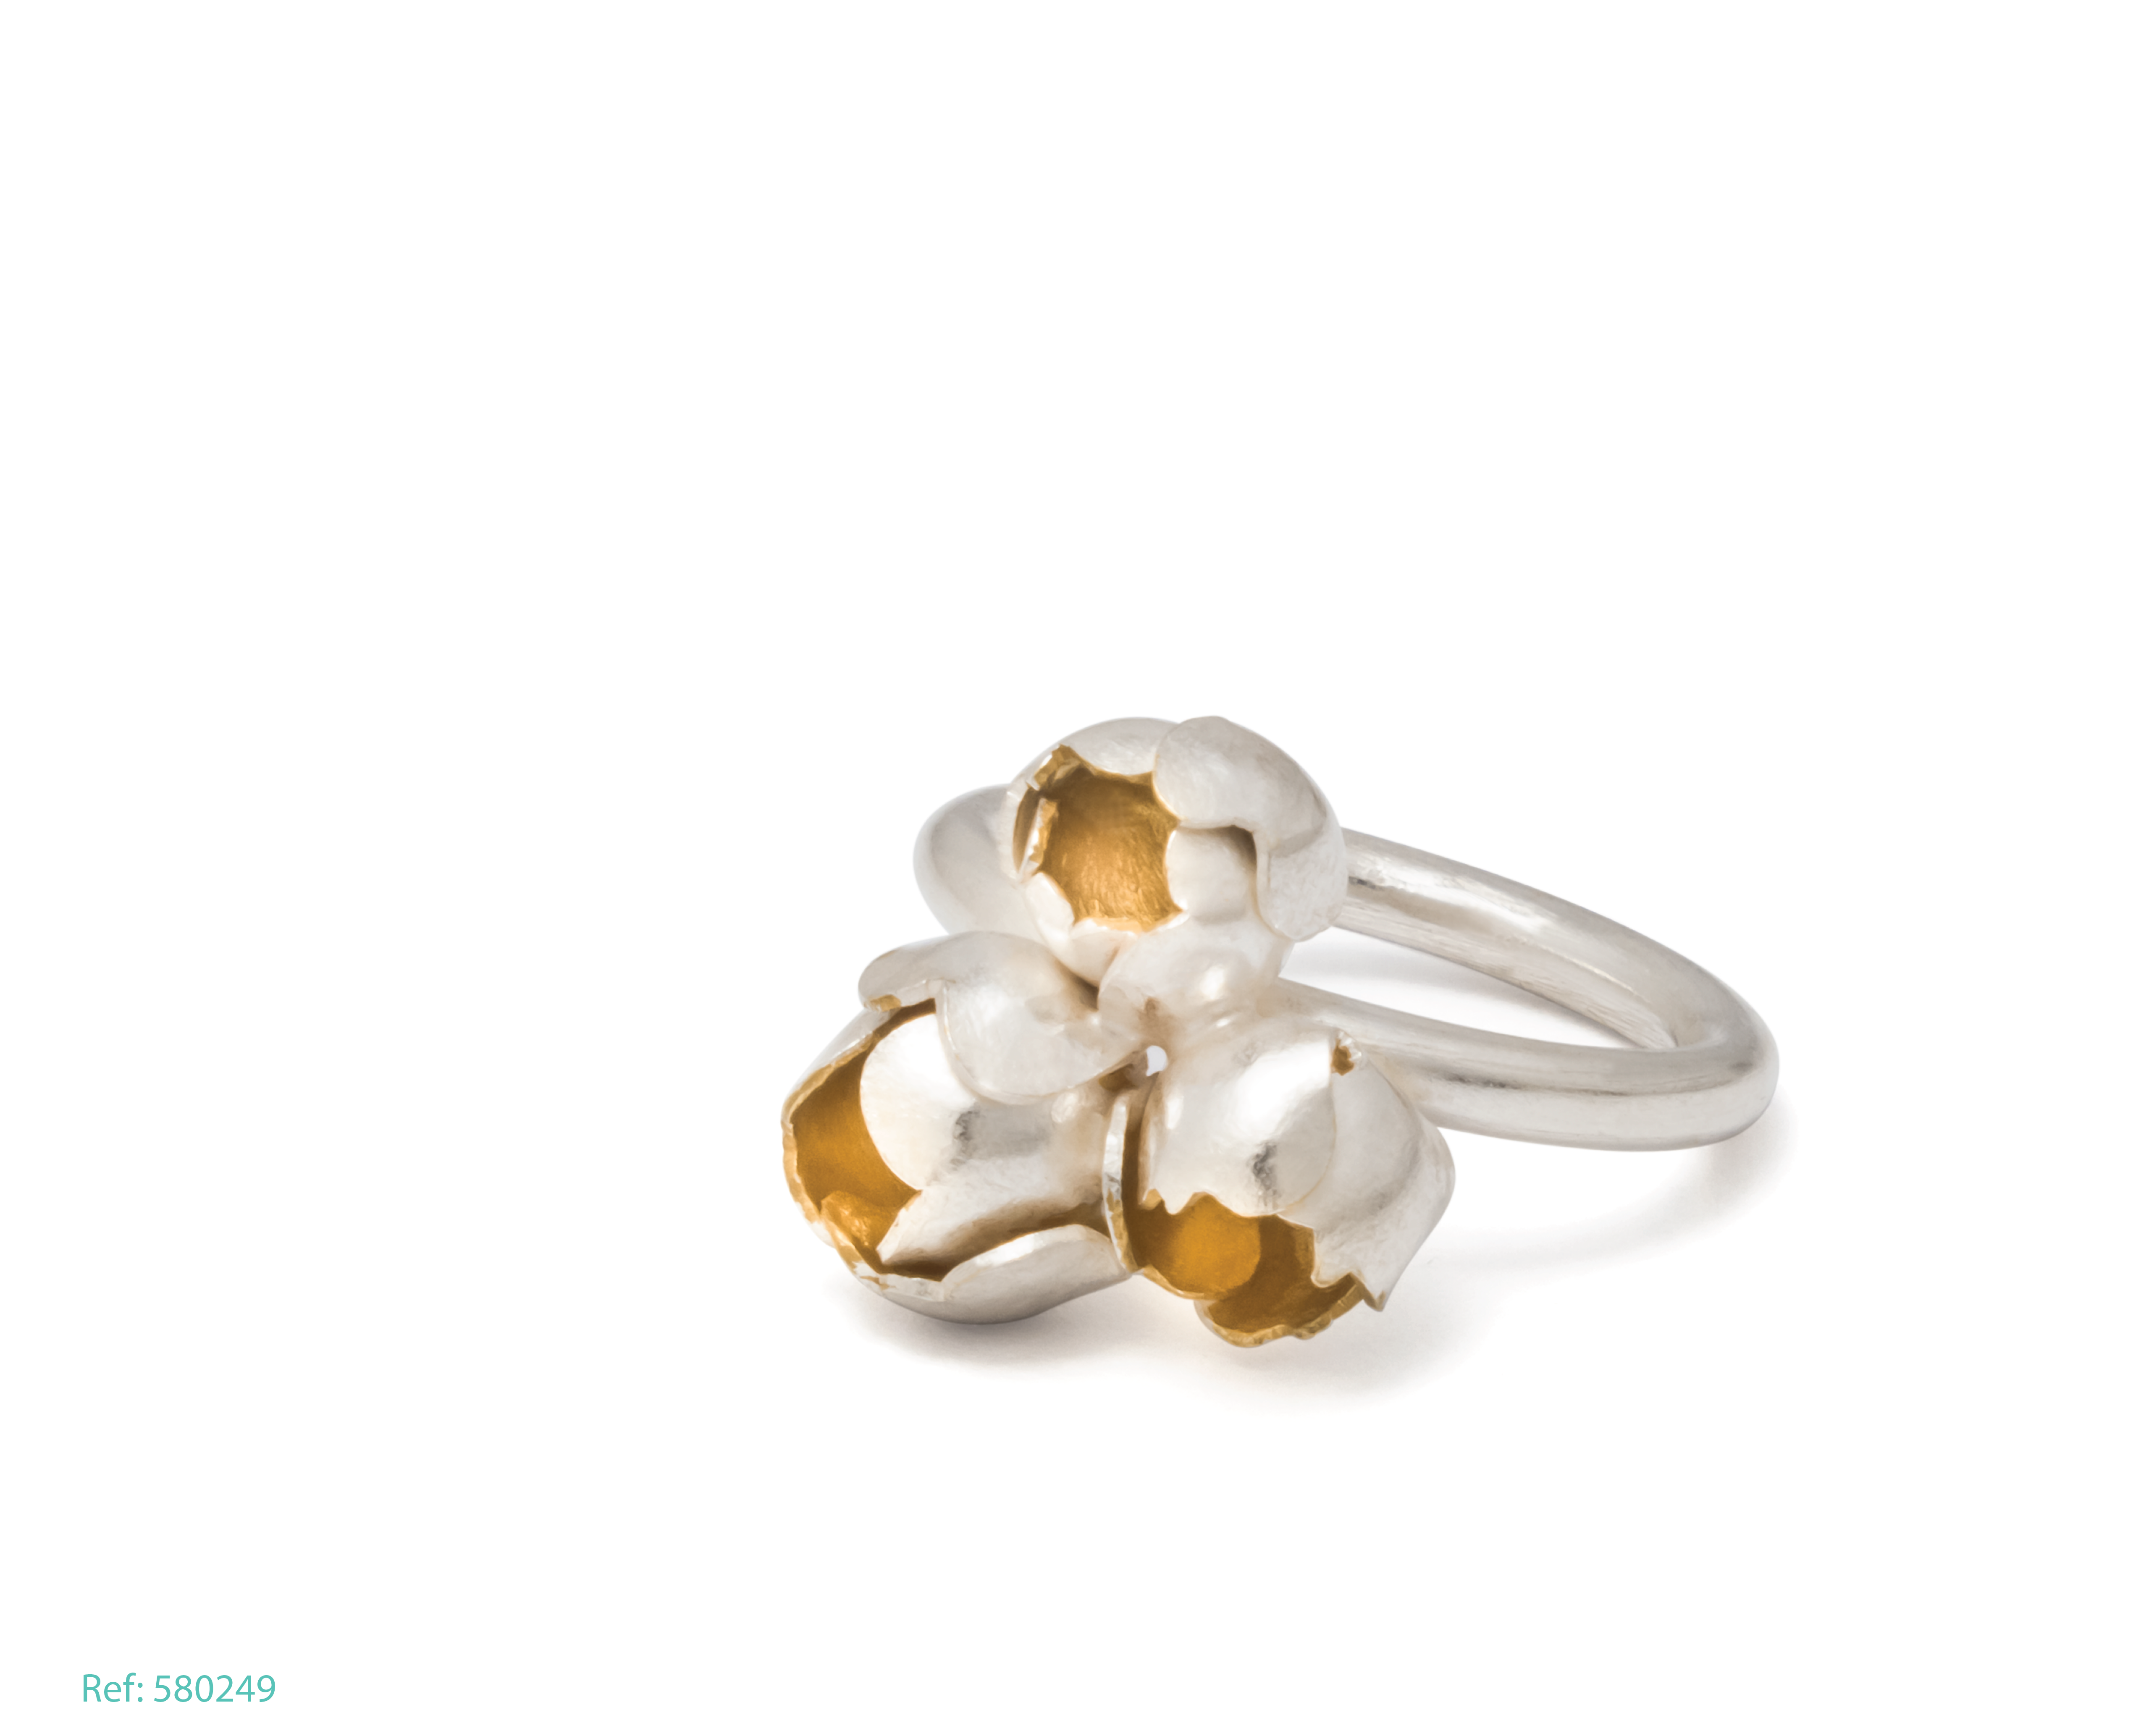 Anillo barnacle Ref 580249